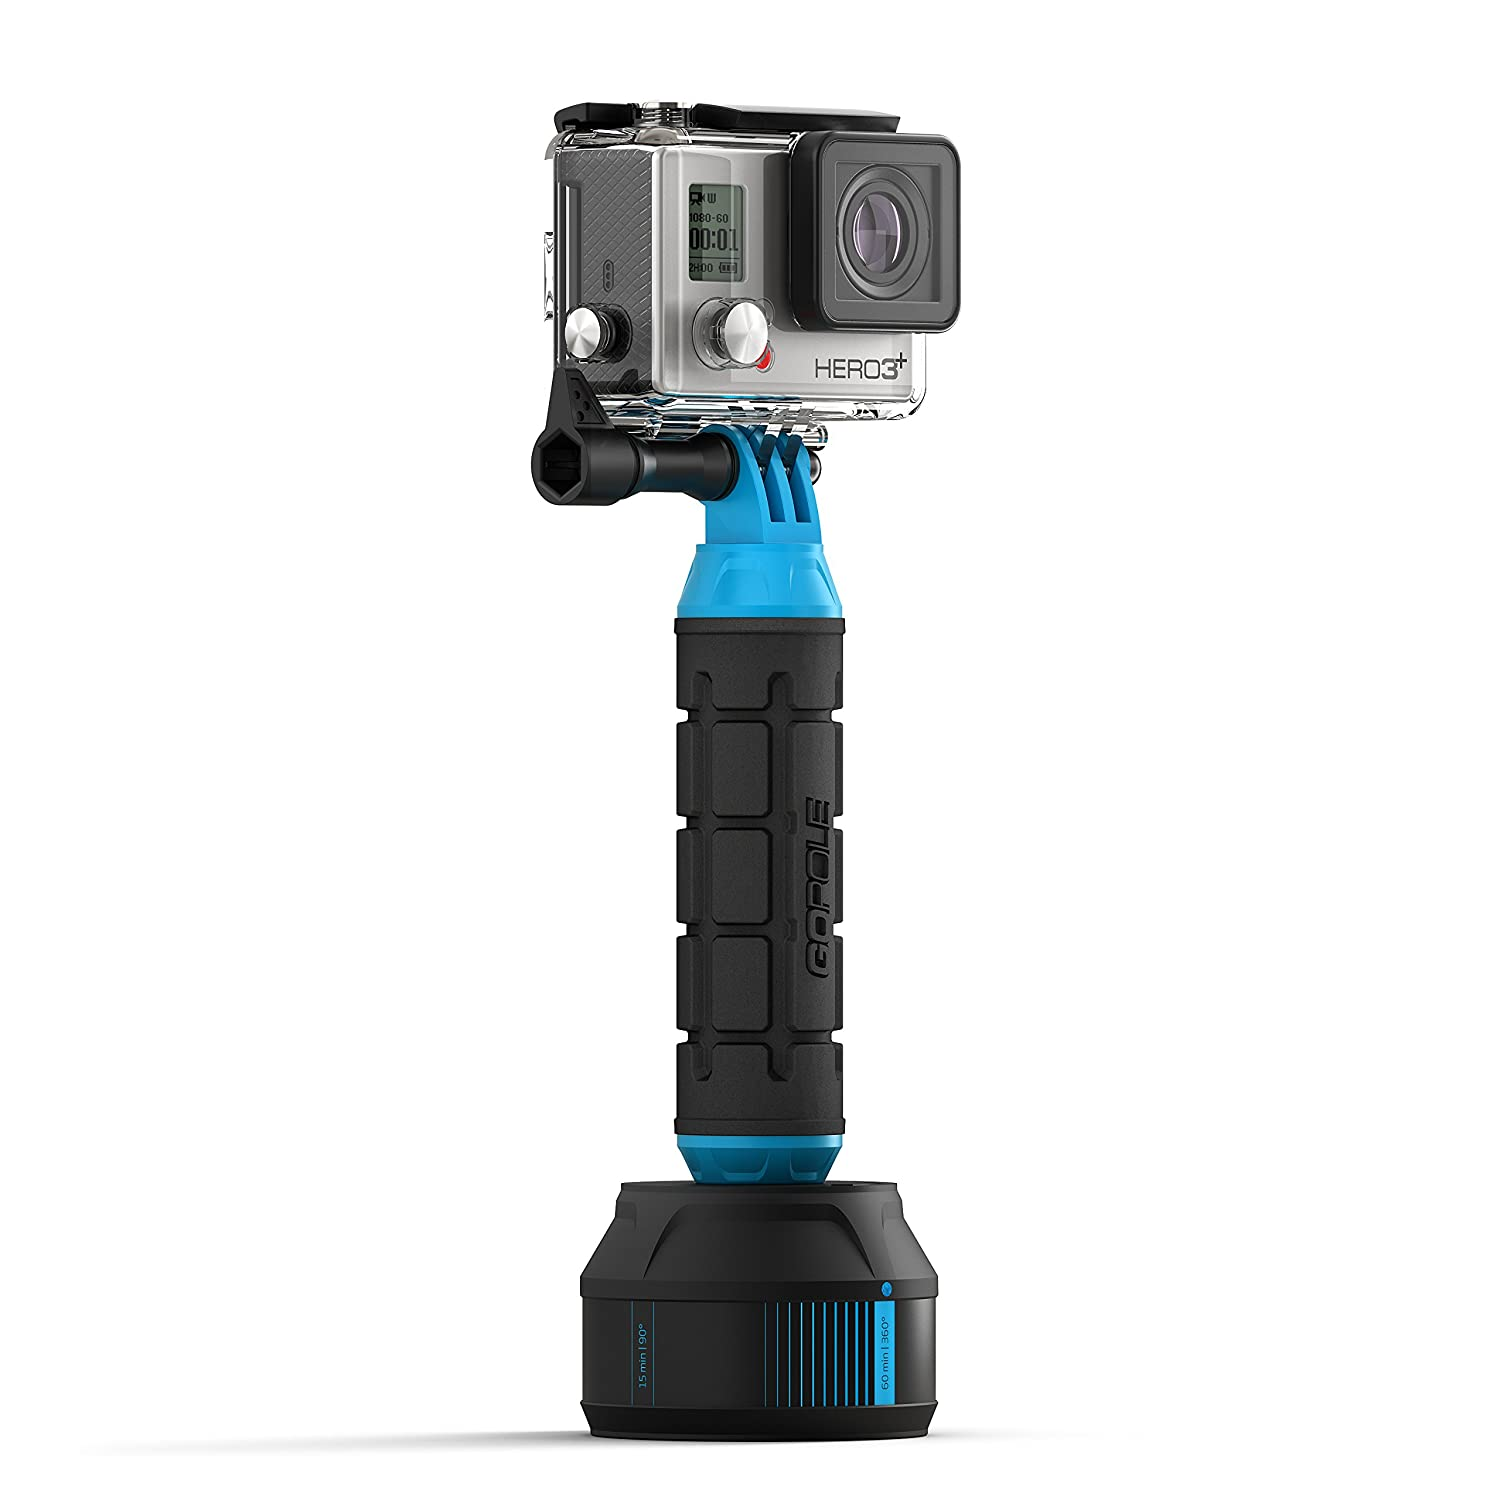 d96259bcf96252 GoPole 360 Degree Time Lapse Tripod Attachment for: Amazon.co.uk: Camera &  Photo